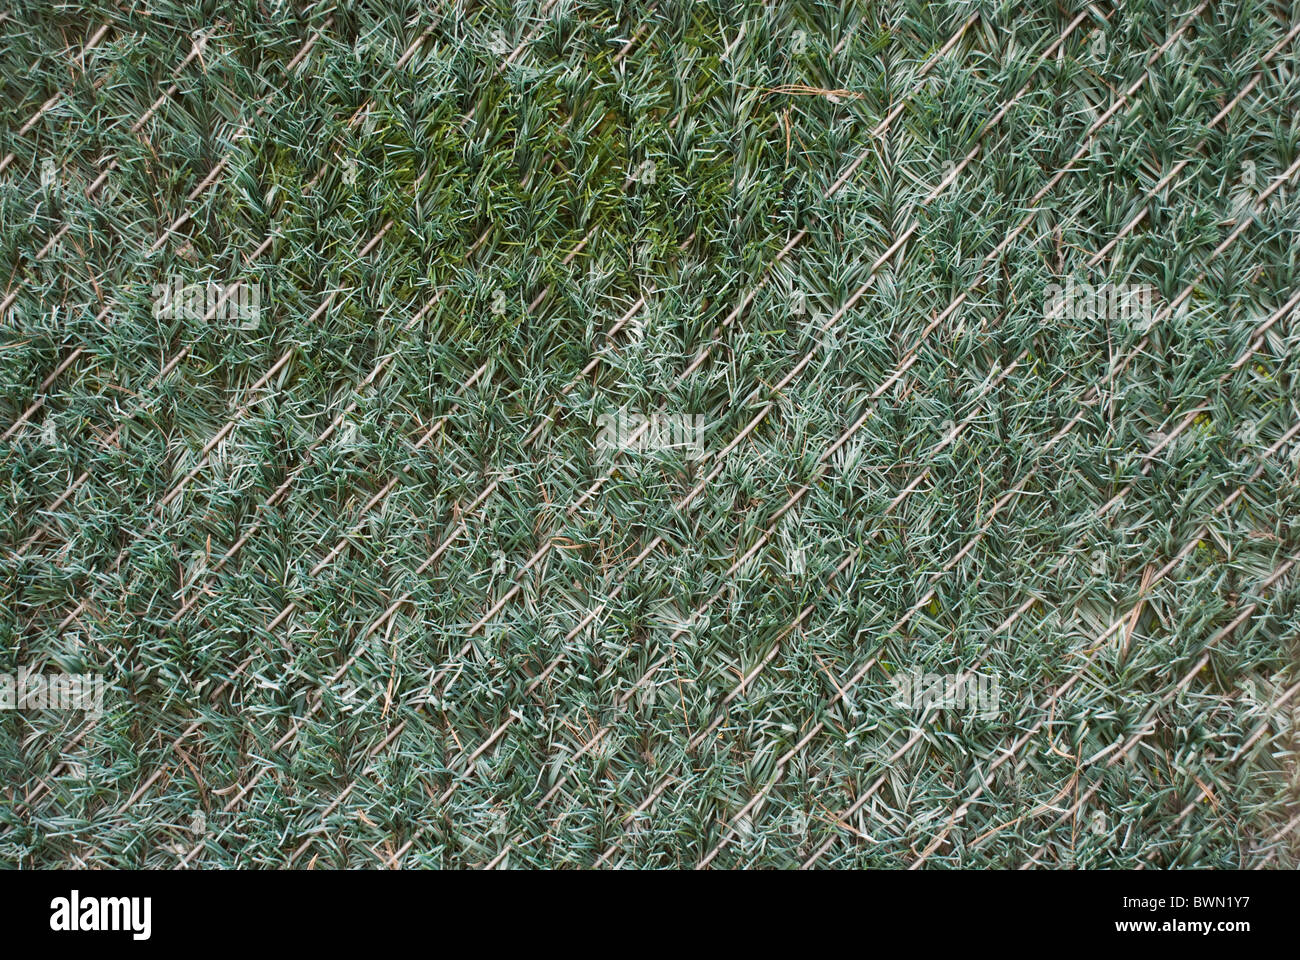 Artificial hedge fence material in chain link fence to obscure and beautify the scene or create privacy - Stock Image